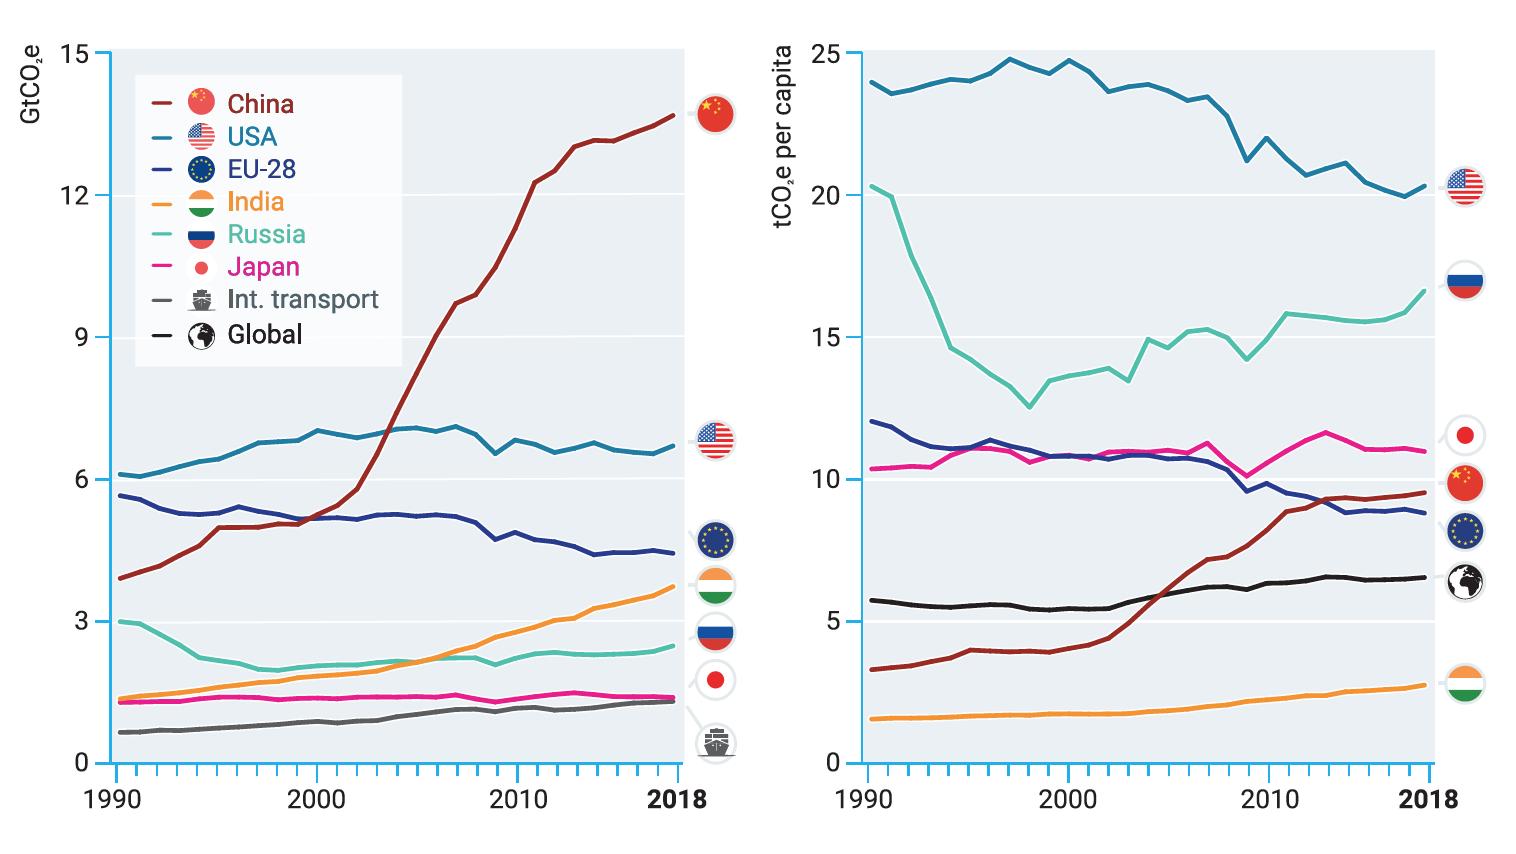 Figure 2. The top emitters of greenhouse gases, excluding land-use change emissions due to lack of reliable country-level data, on an absolute basis (left) and per capita basis (right) (UNEP Emissions Gap Report 2019)